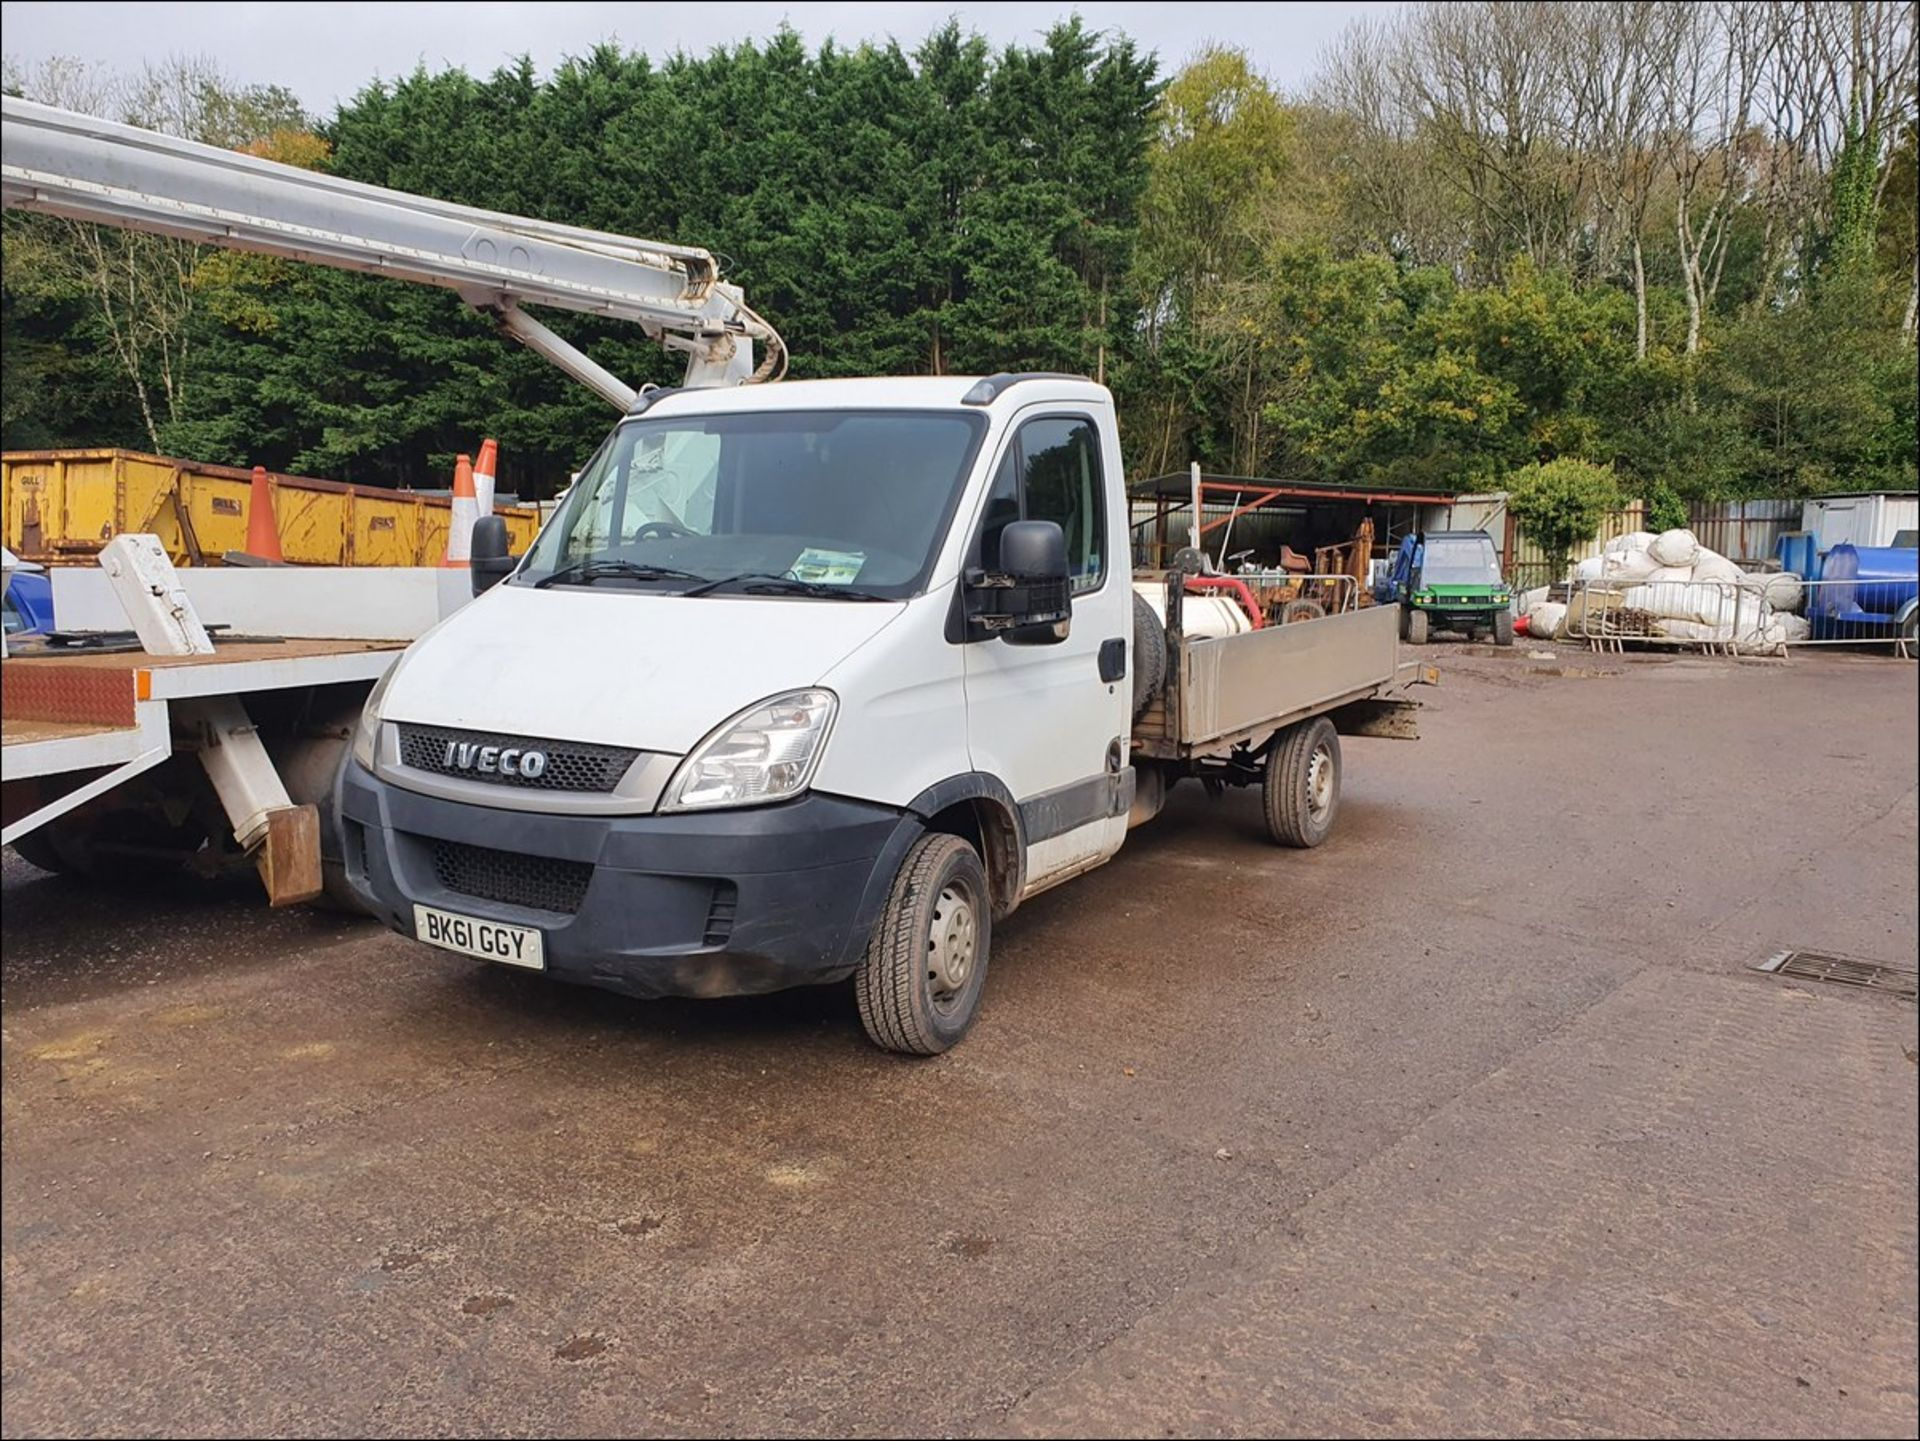 11/61 IVECO DAILY 35S11 MWB - 2287cc 2dr Flat Bed (White/blue, 194k) - Image 2 of 9